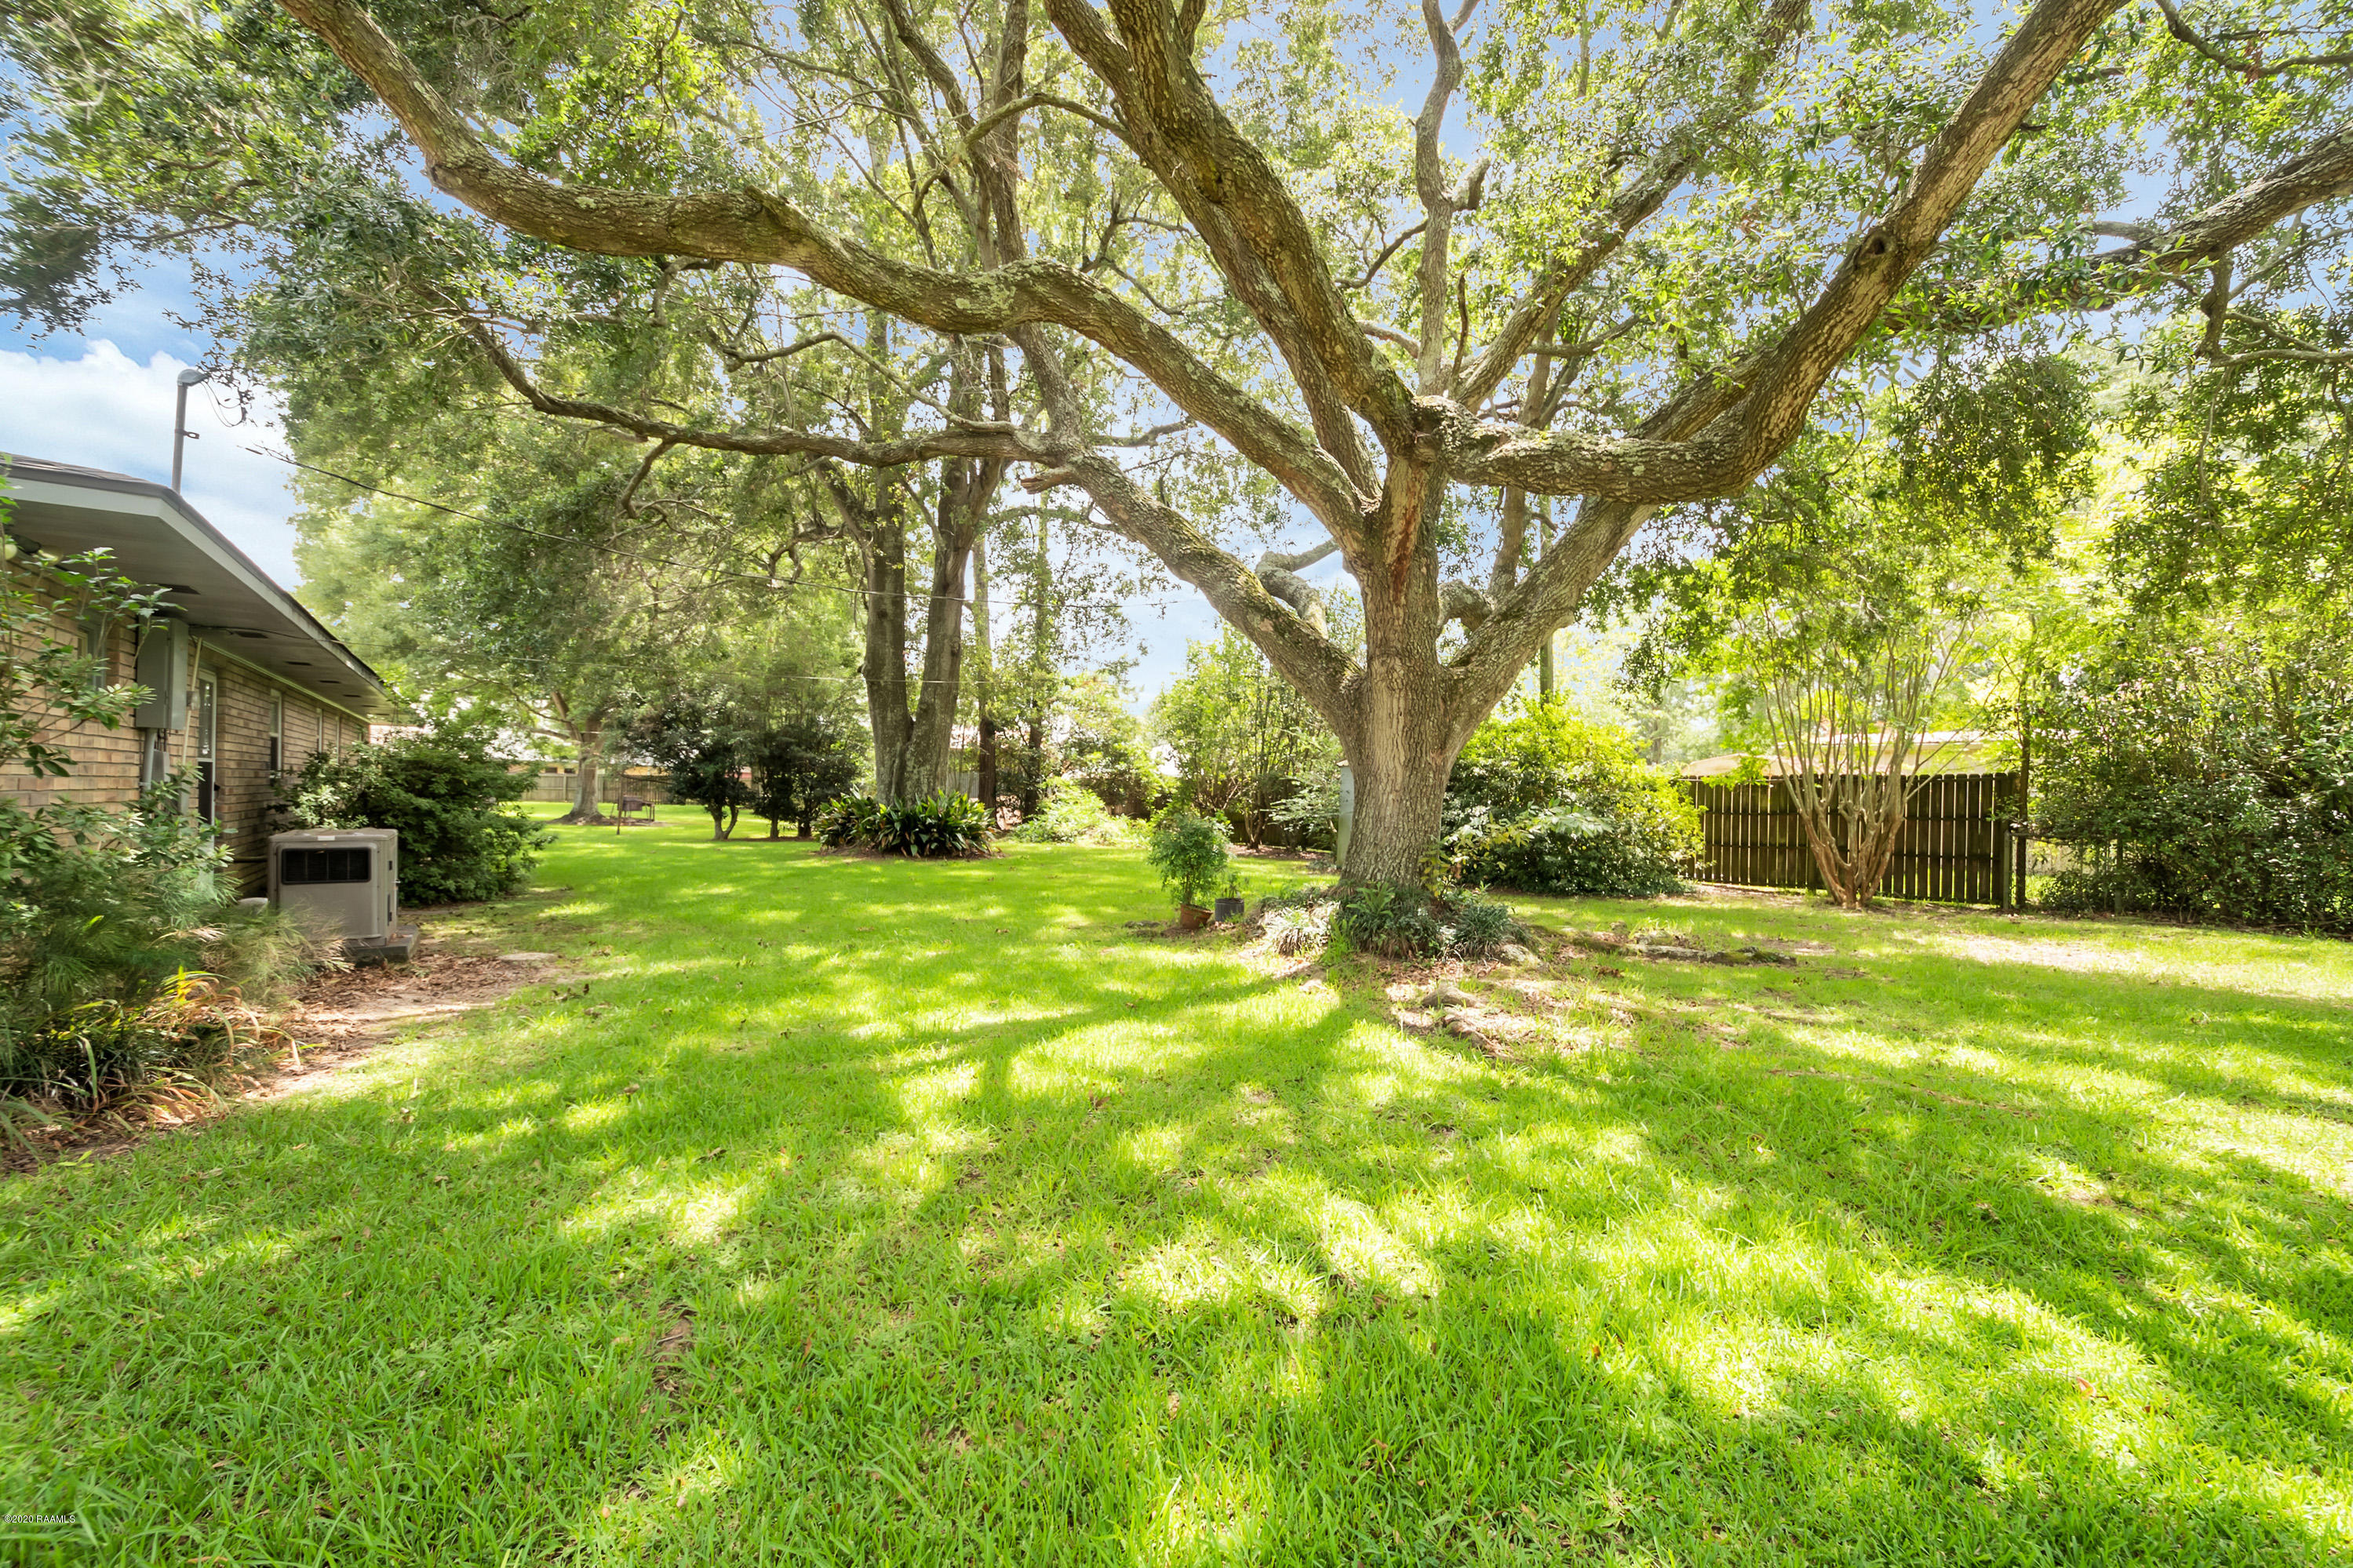 132 Richlieu Circle, Kaplan, LA 70548 Photo #14